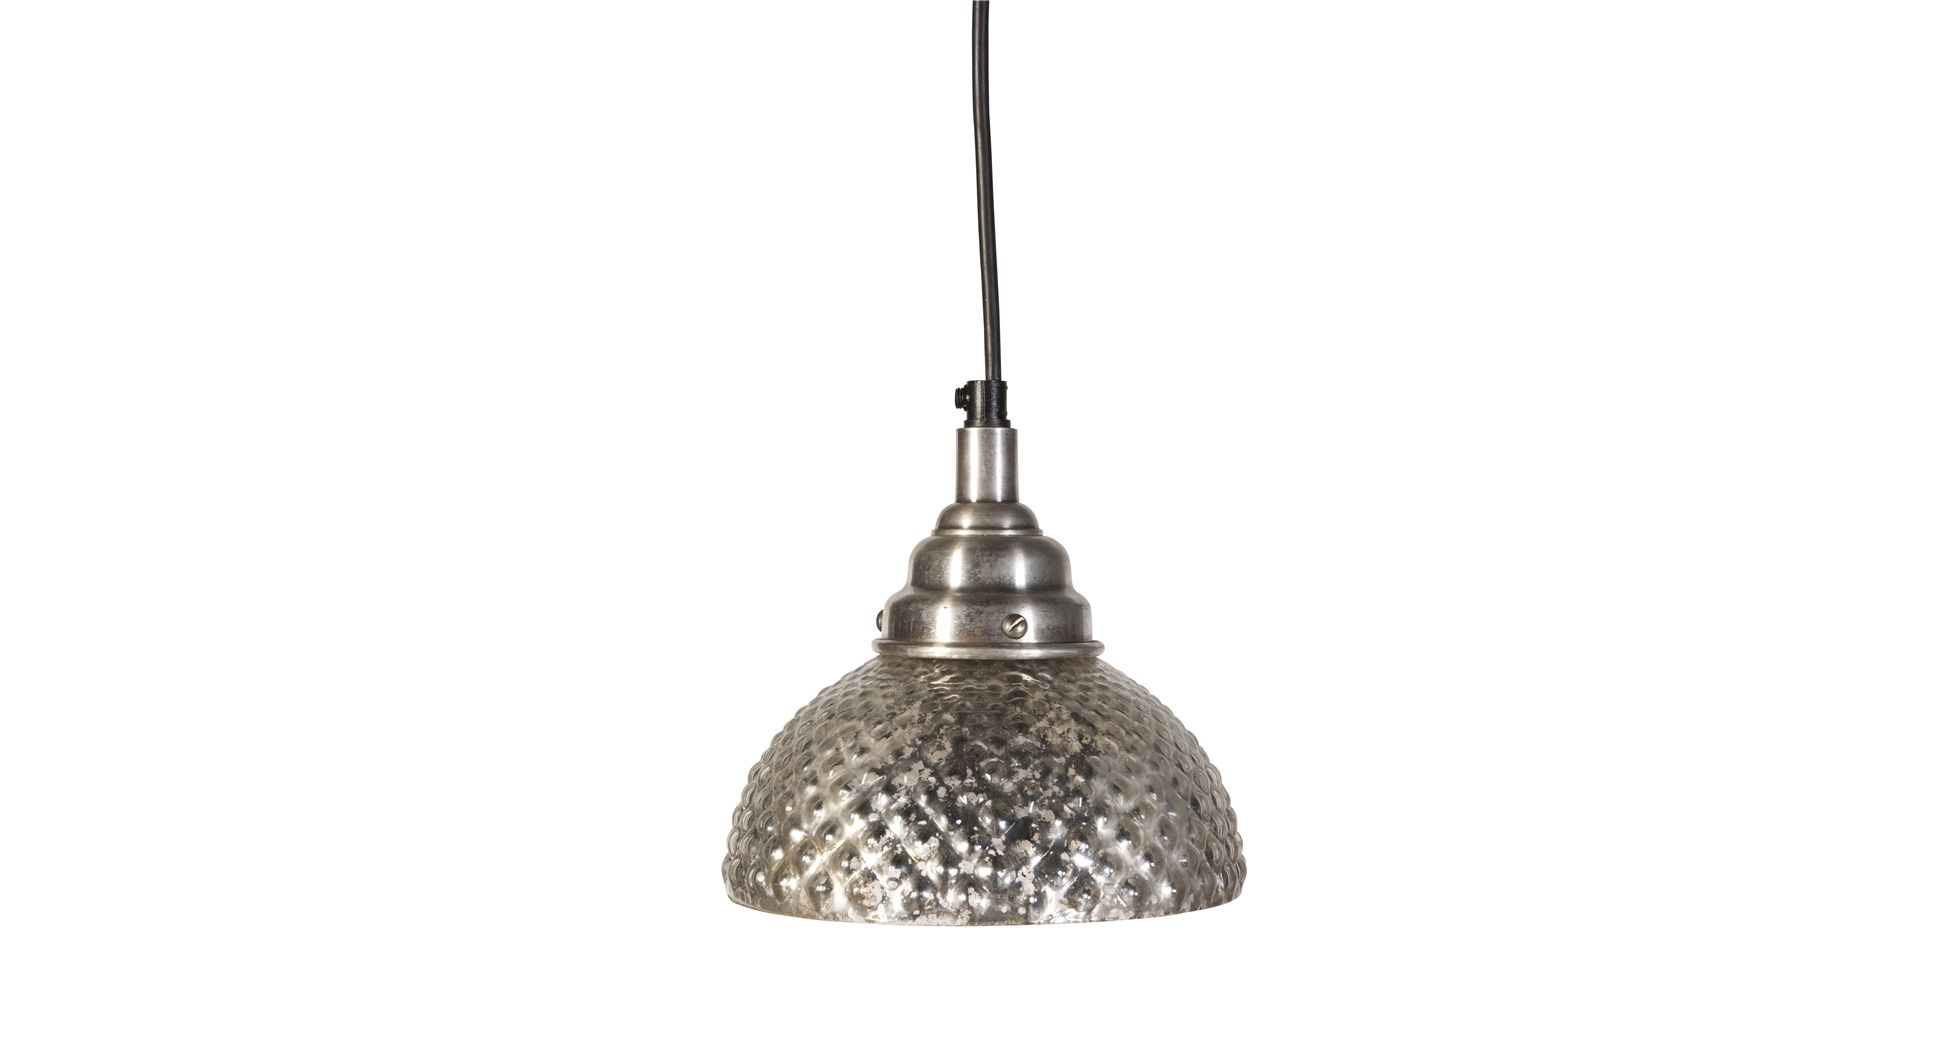 Mercury Glass Pendant Light Fixture Beauteous Lightingmercuryglasspendantlightsatanthropologiechicour Decorating Design